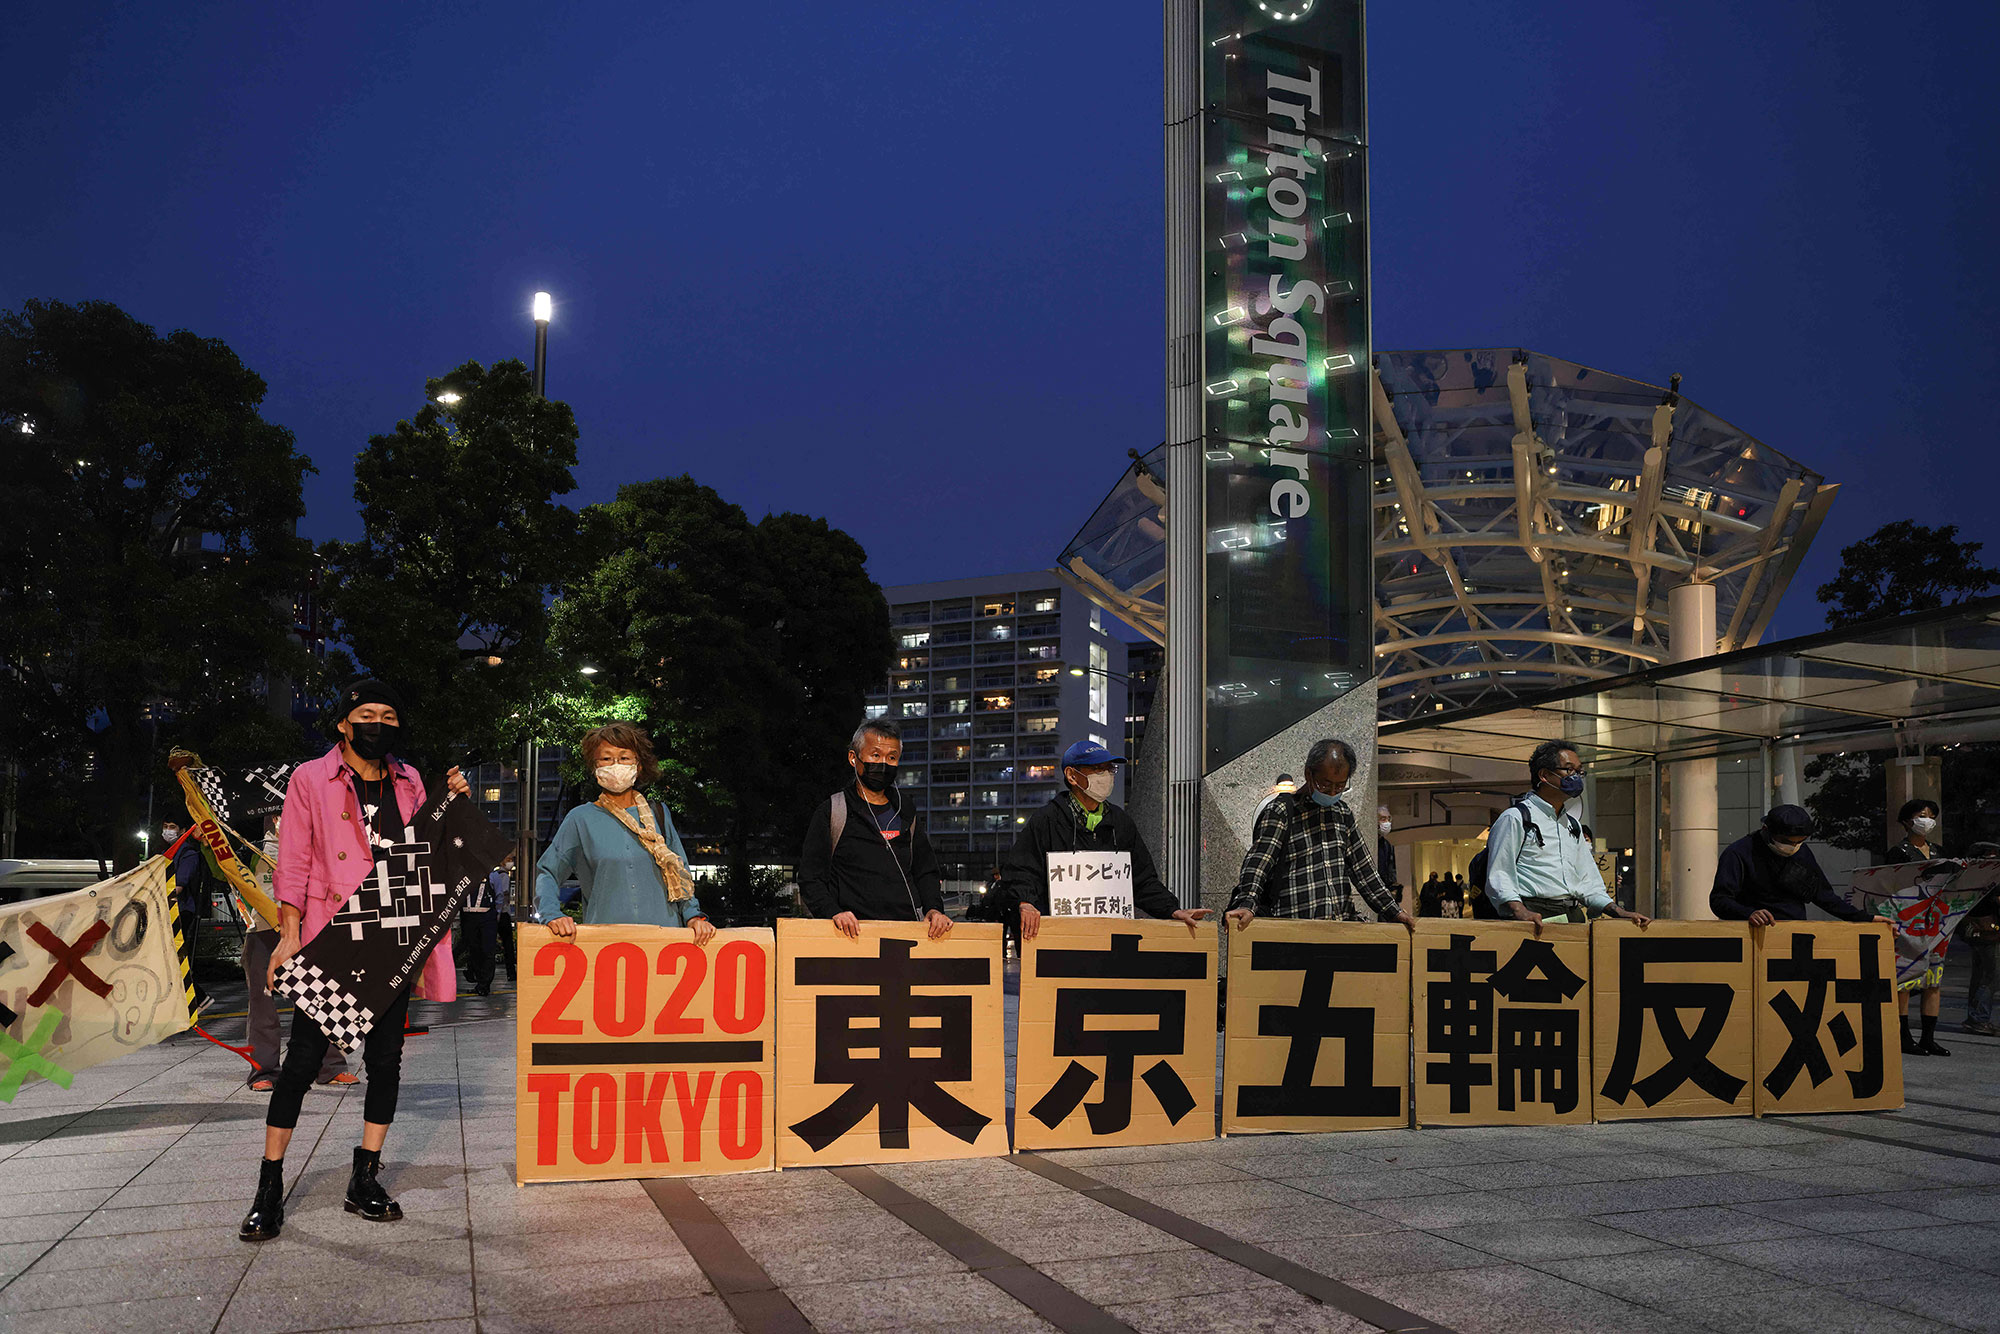 Tokyo Olympics: The Games Haunted by Travel Restrictions and Vaccine Shortages